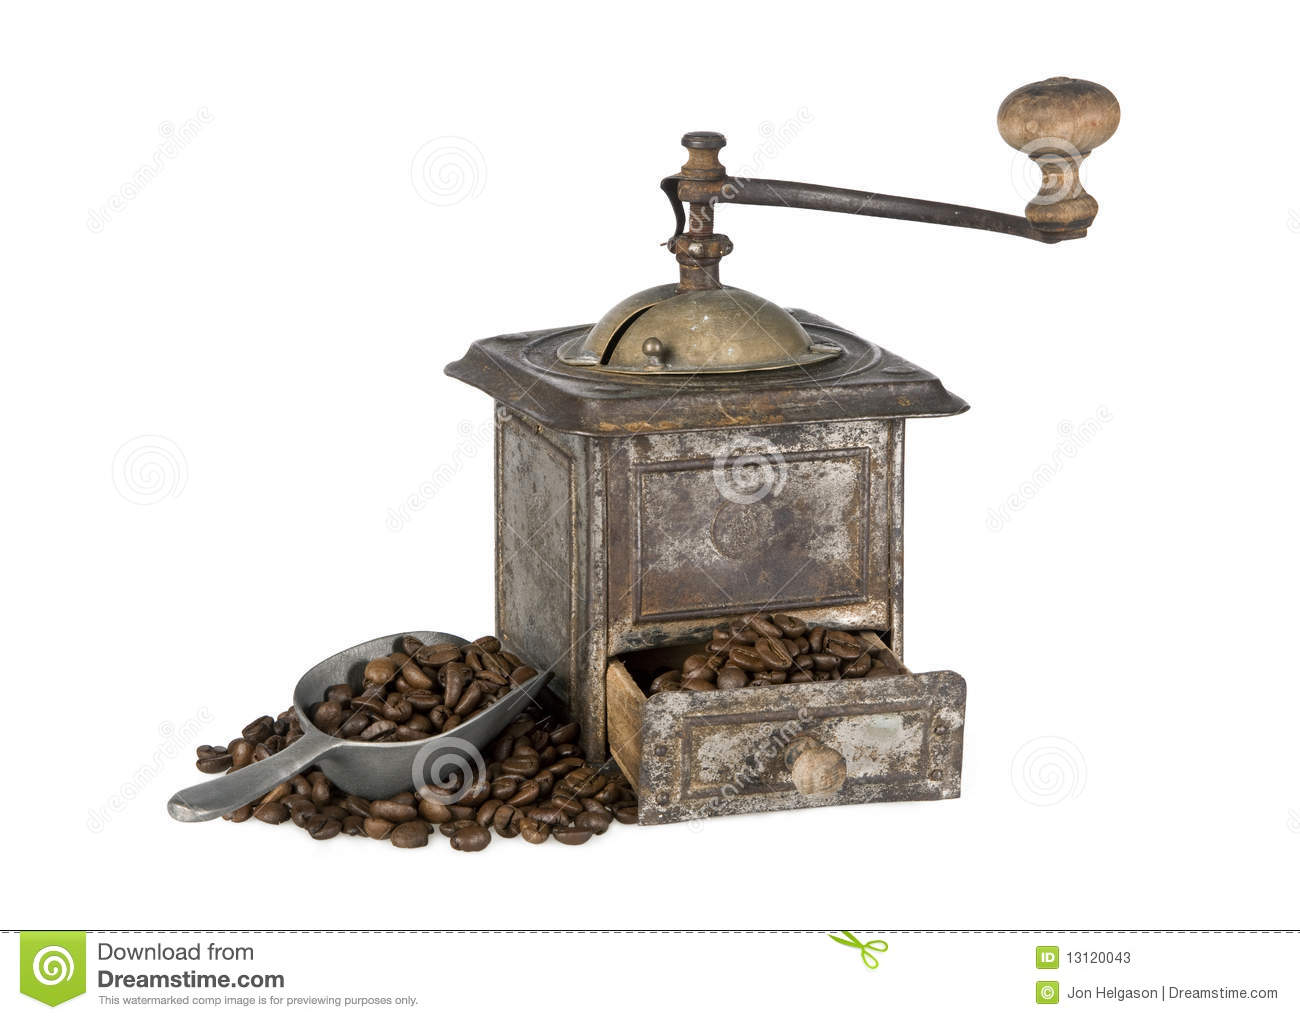 Old coffee grinder clipart 20 free Cliparts | Download ...